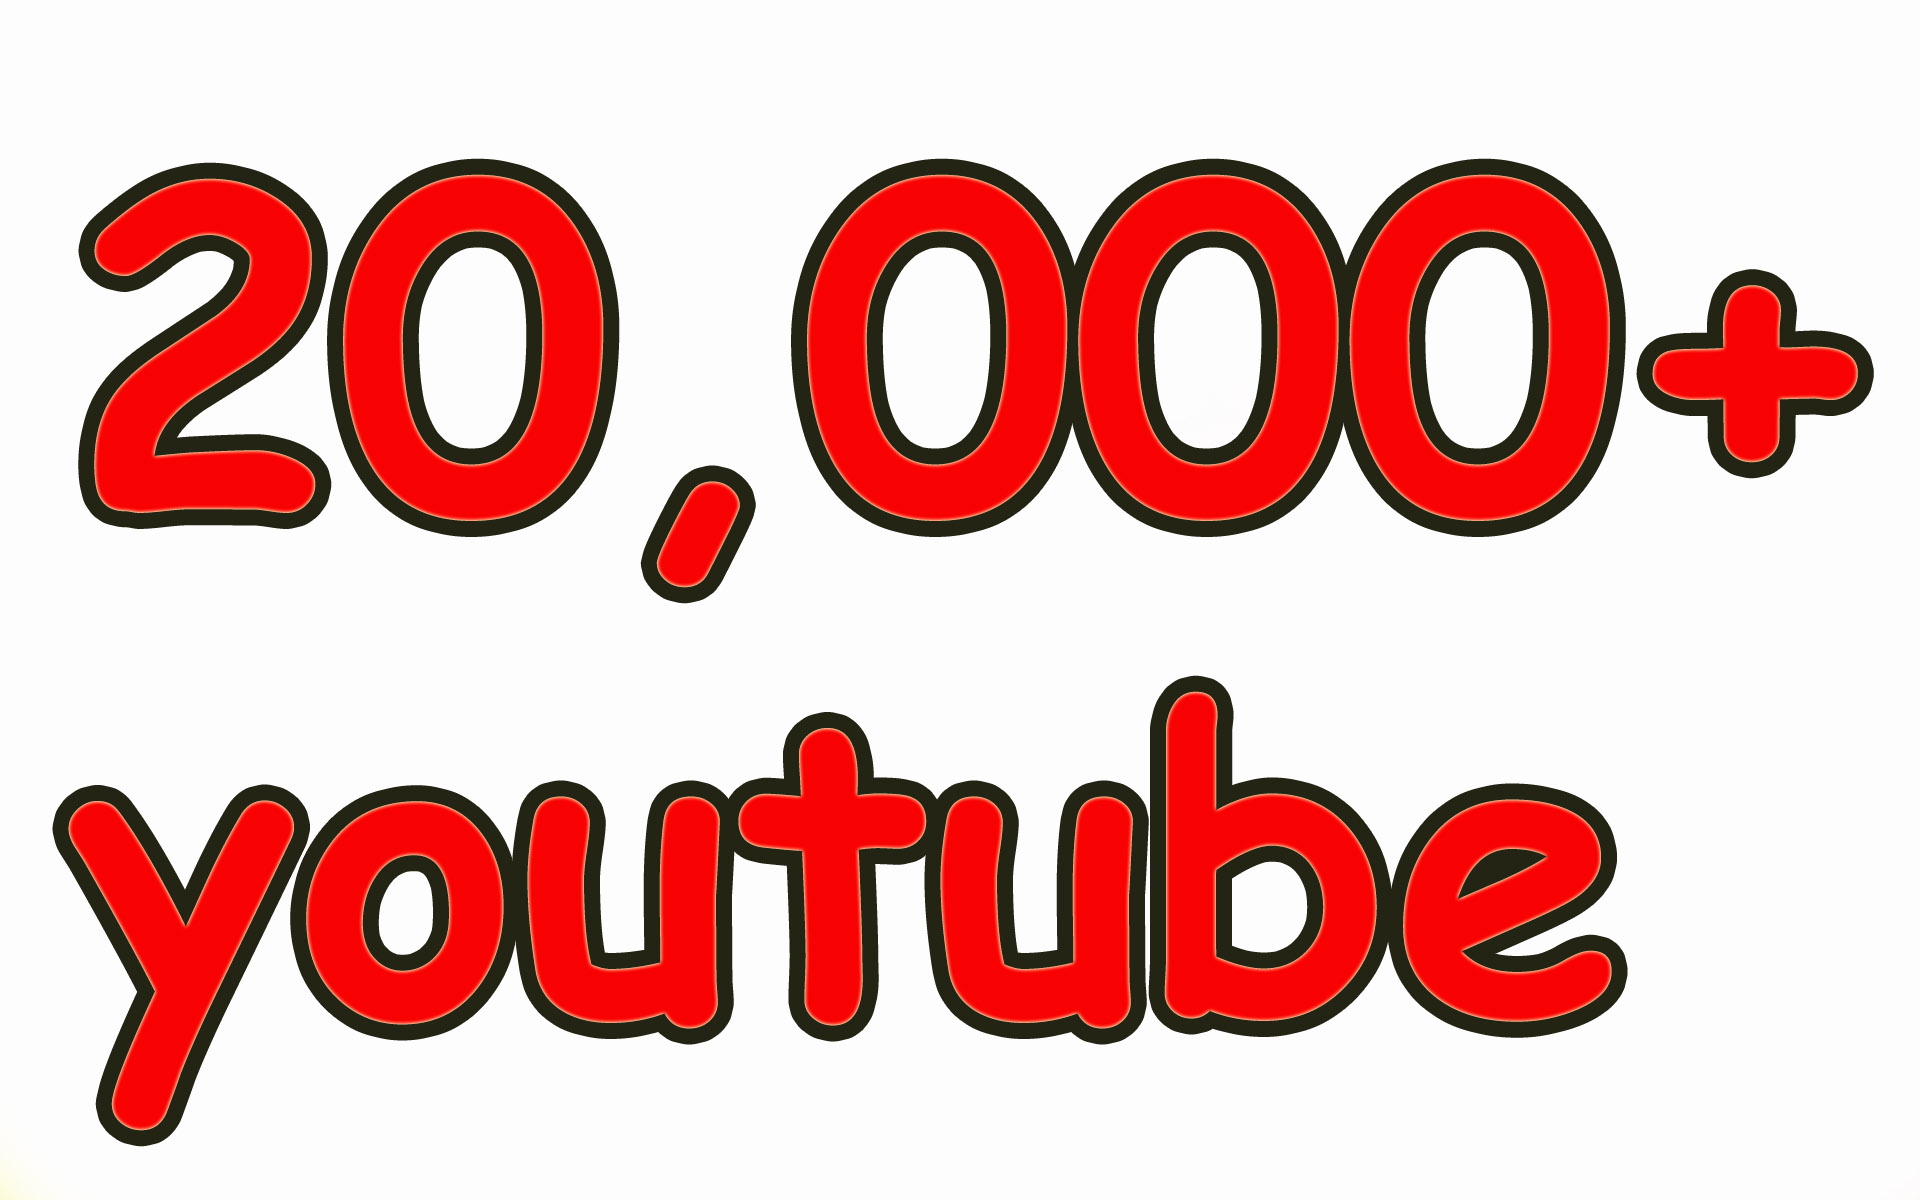 Get 20,000 HIGH QUALITY YouTube Video Views